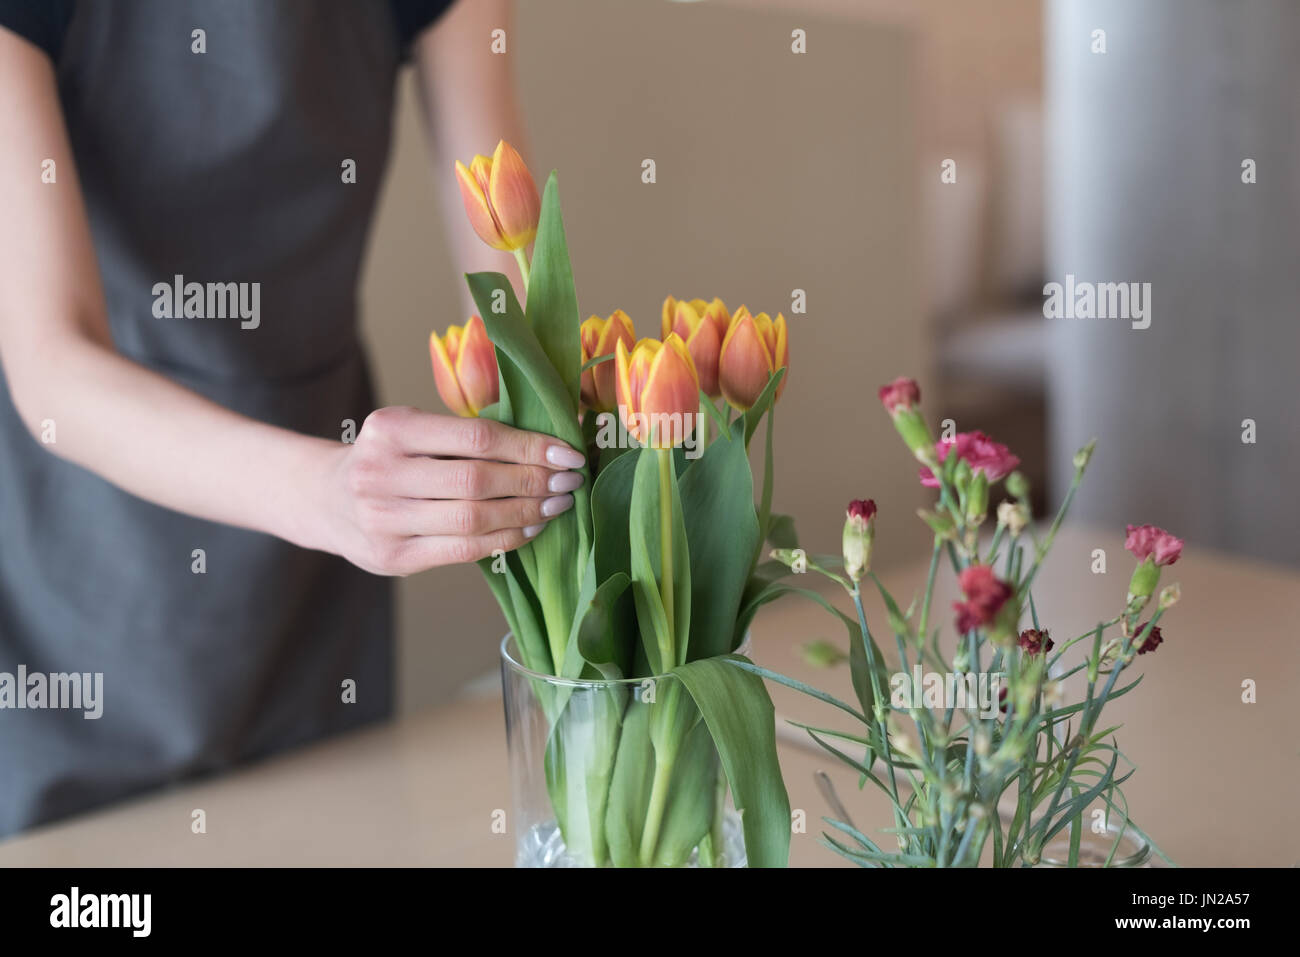 Mid section of woman arranging tulips in vase on table at cafe - Stock Image